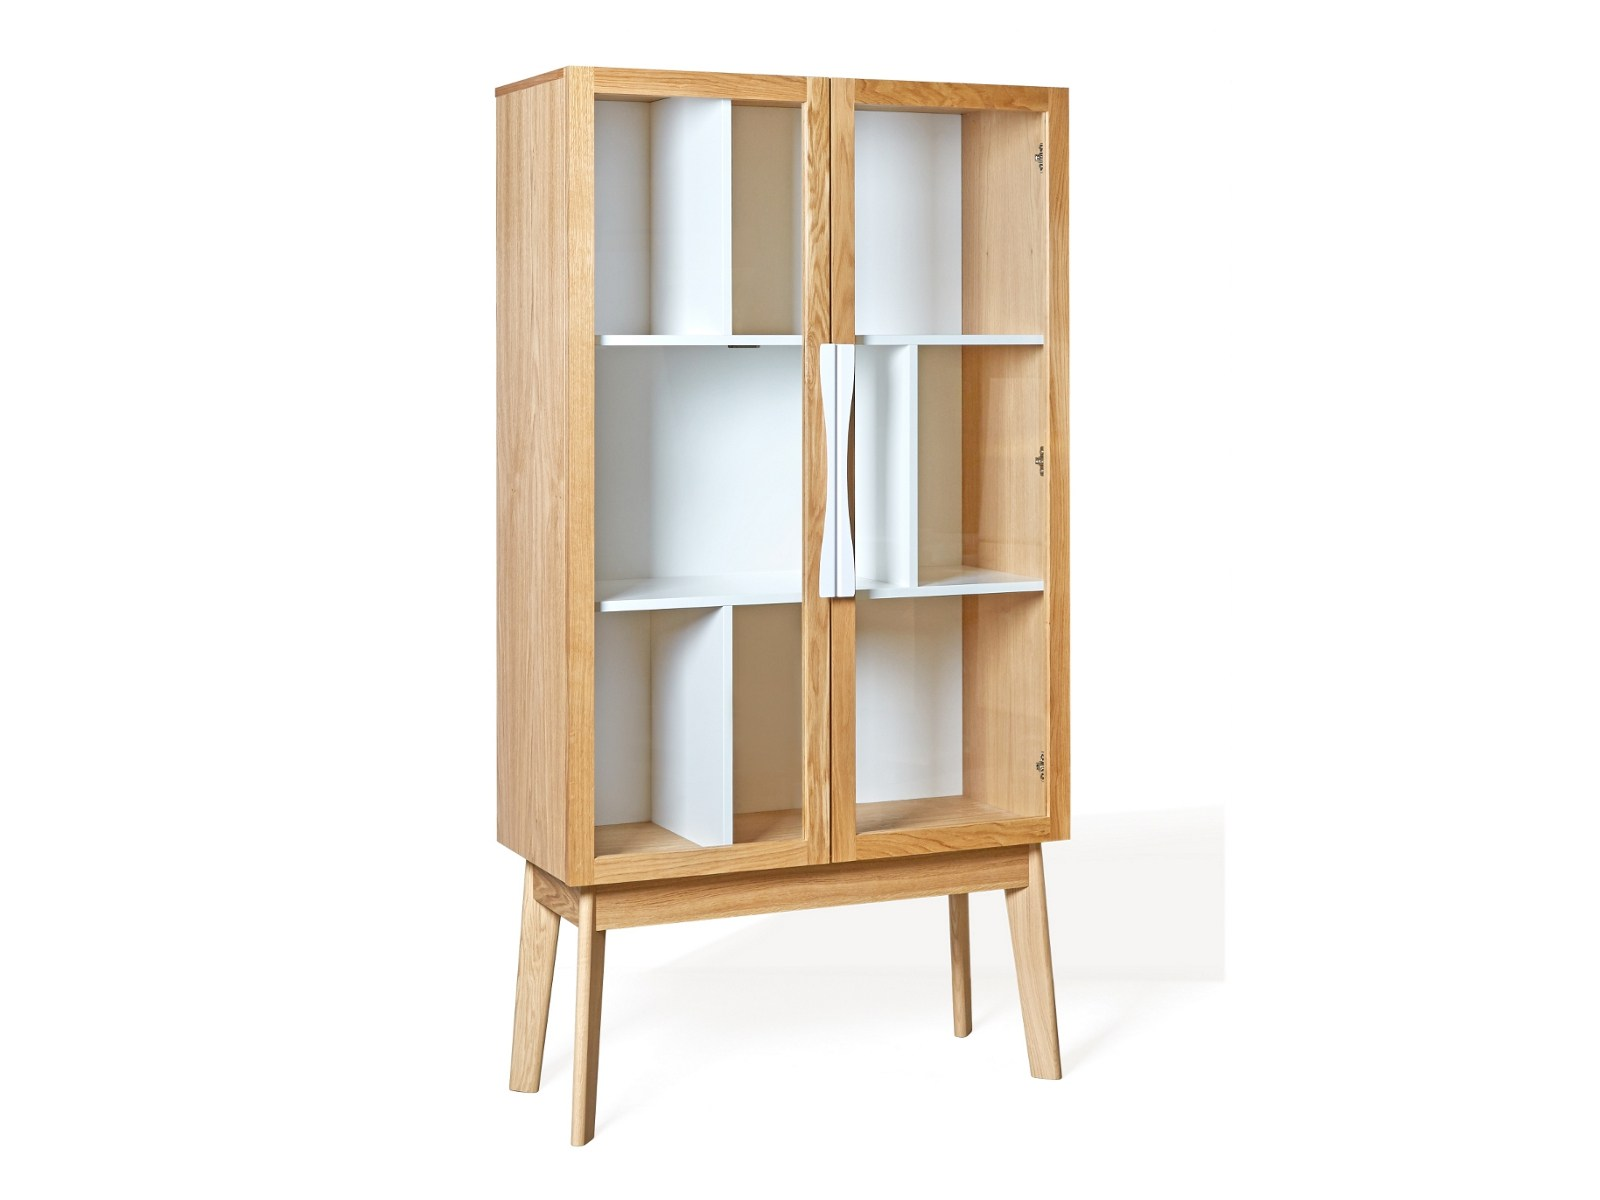 AVON Display cabinet by Woodman